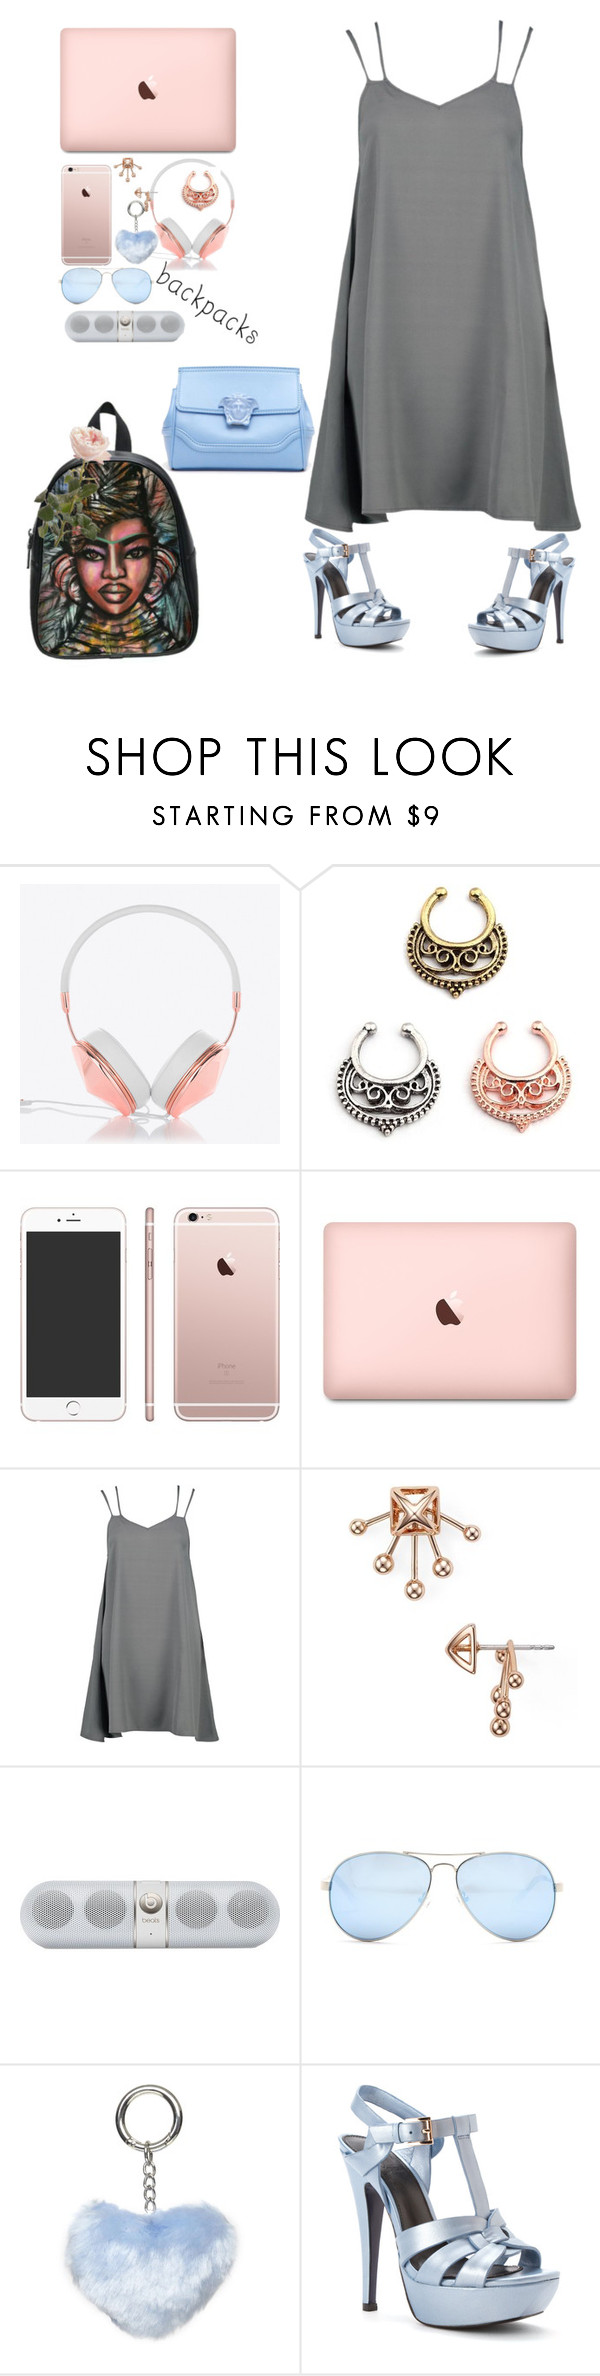 """""""Untitled #107"""" by kenni35 ❤ liked on Polyvore featuring Frends, Boohoo, Rebecca Minkoff, Beats by Dr. Dre, GUESS, Dorothy Perkins, Hardy Design Works, Versace, backpacks and contestentry"""